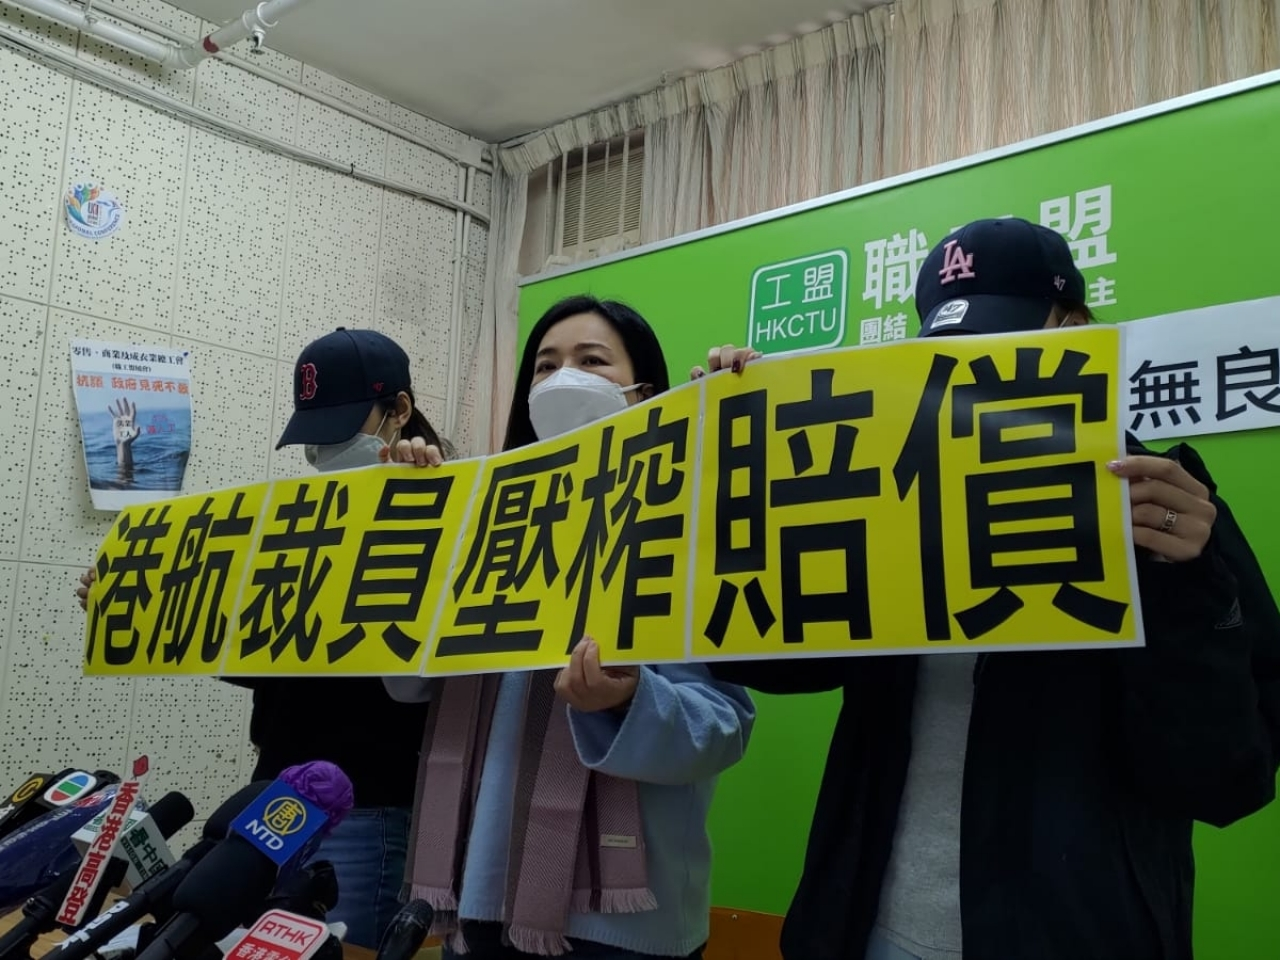 Sacked HK Airlines workers 'accept zero in compensation'